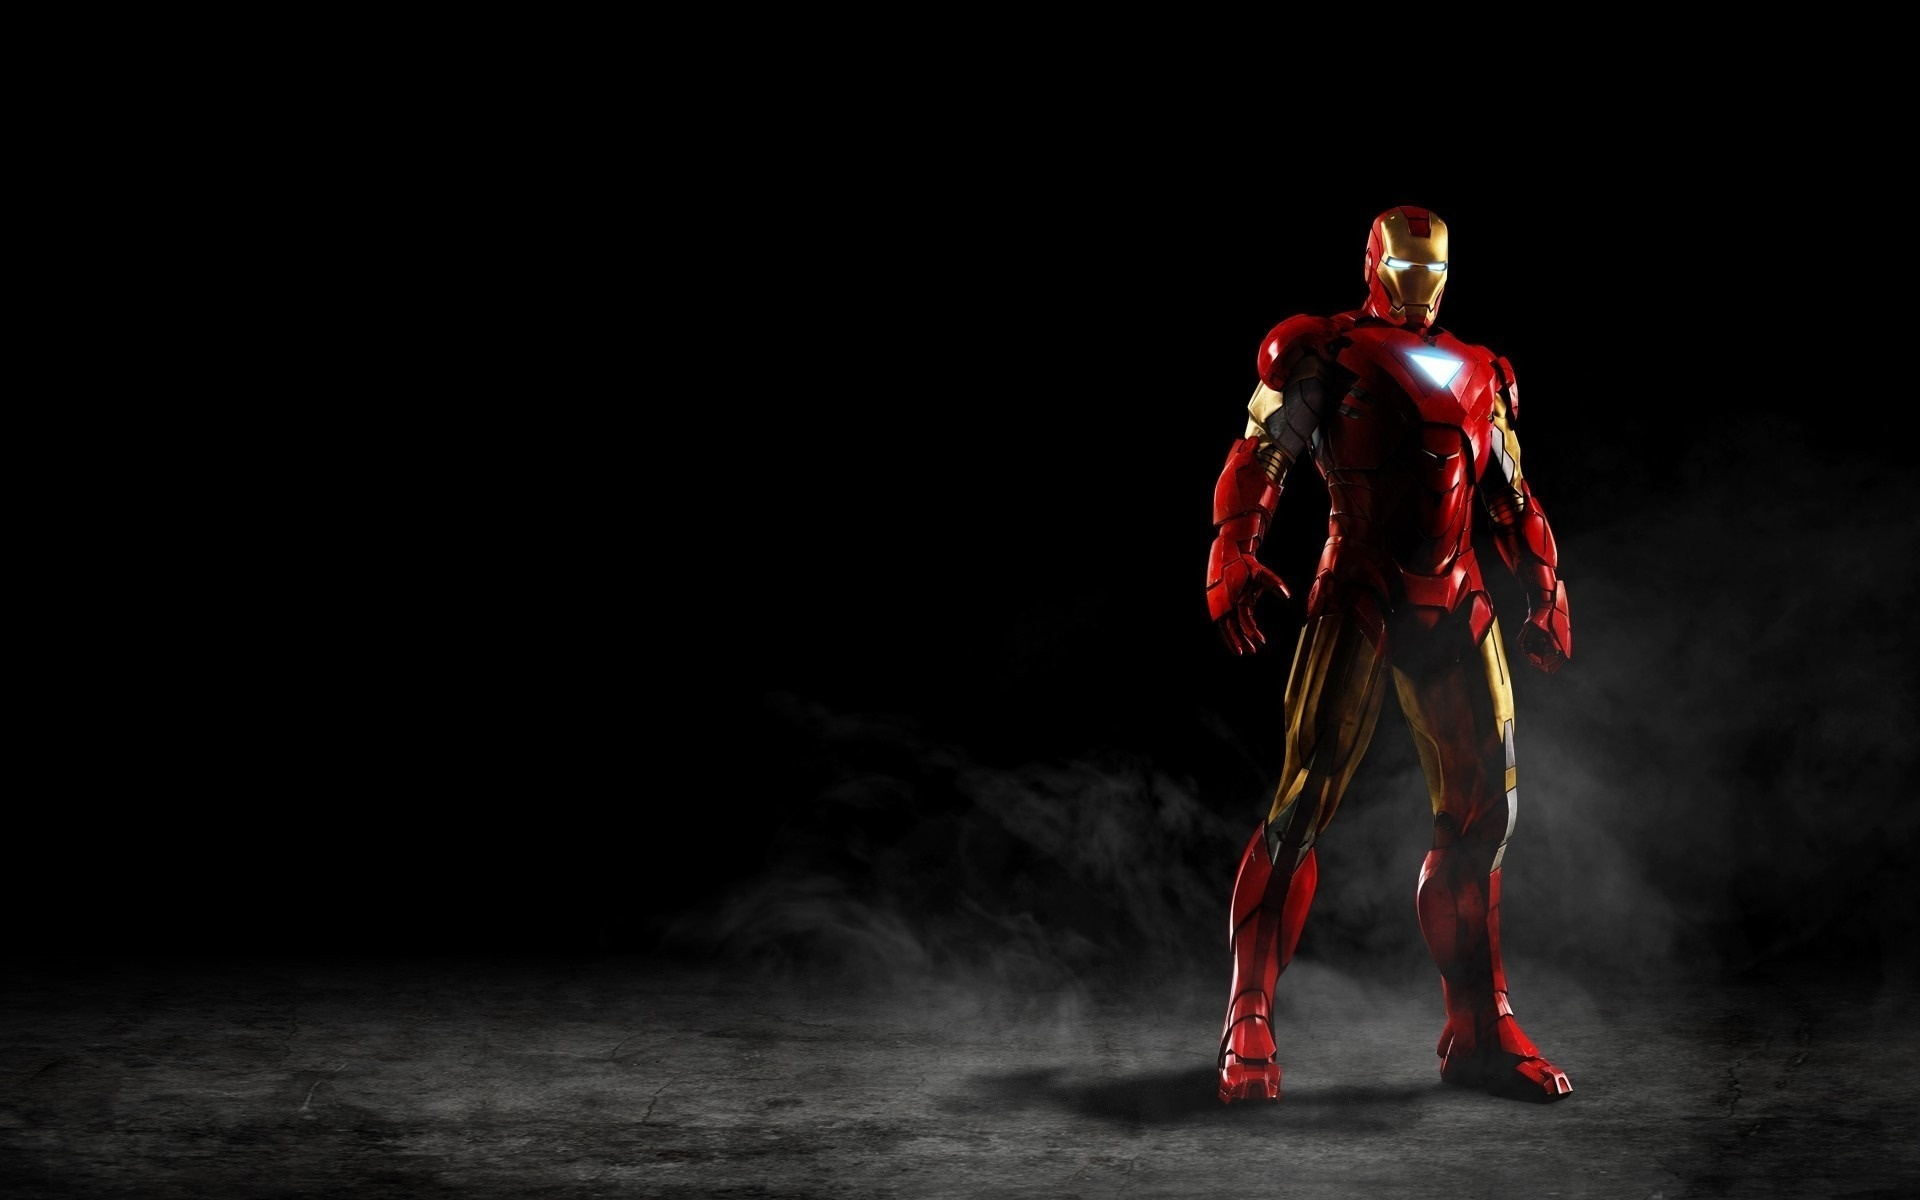 Amazing Iron Man Wallpapers In Jpg Format For Free Download